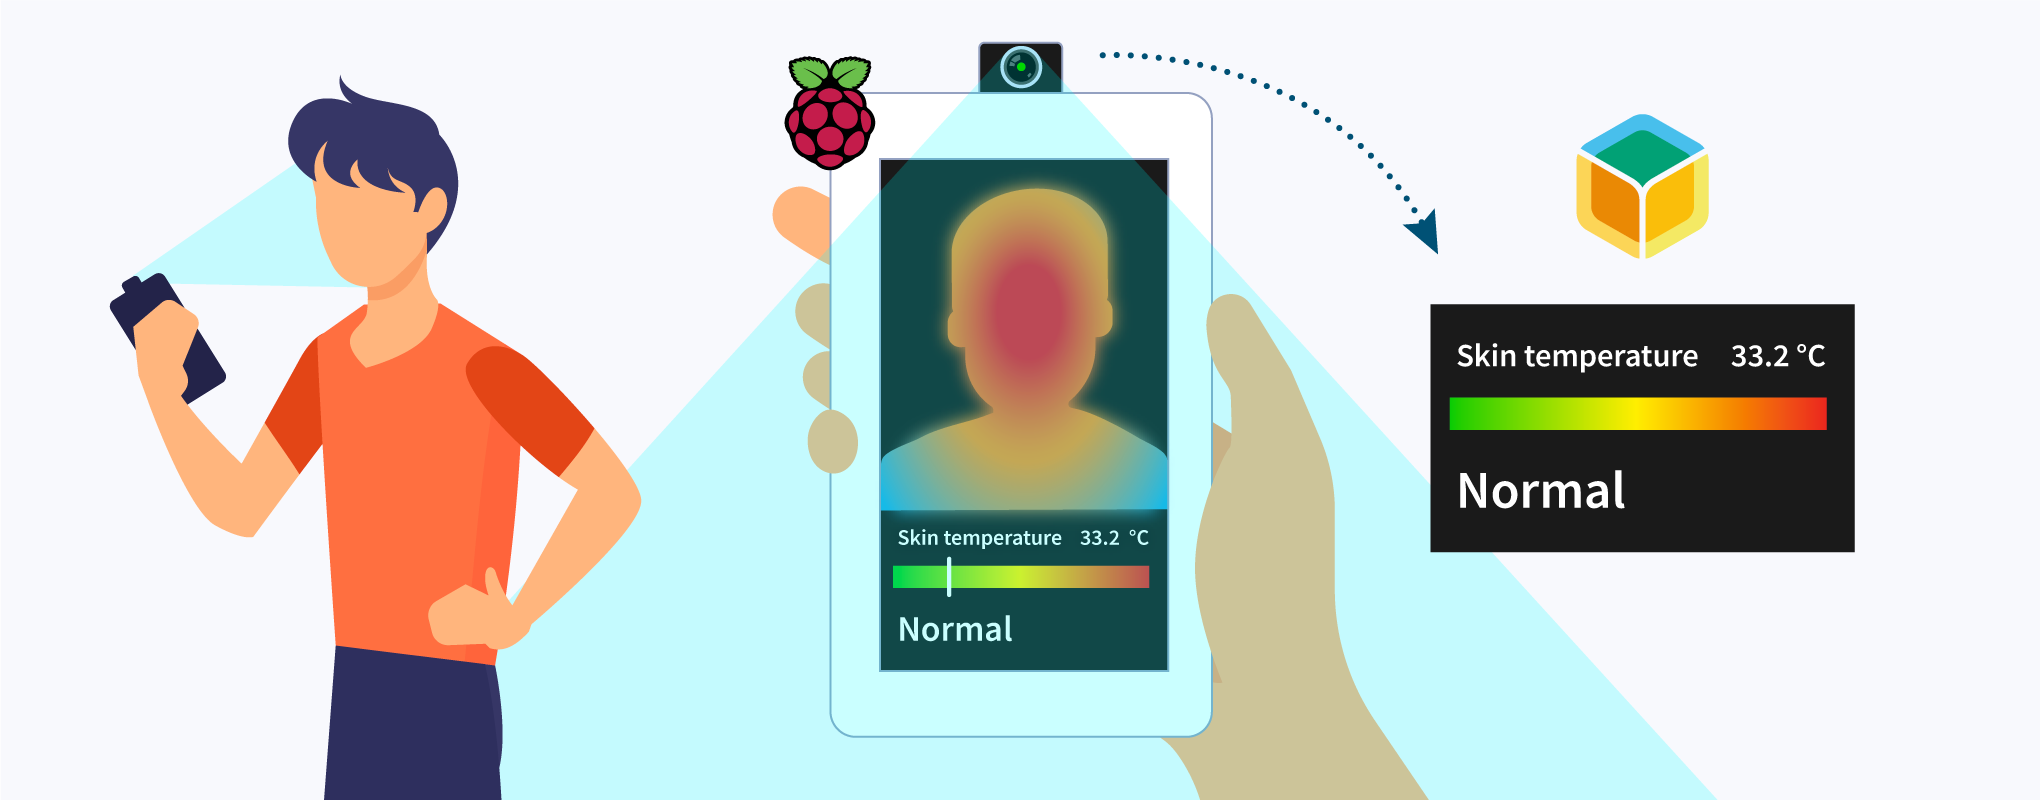 Build a device to check your own skin temperature